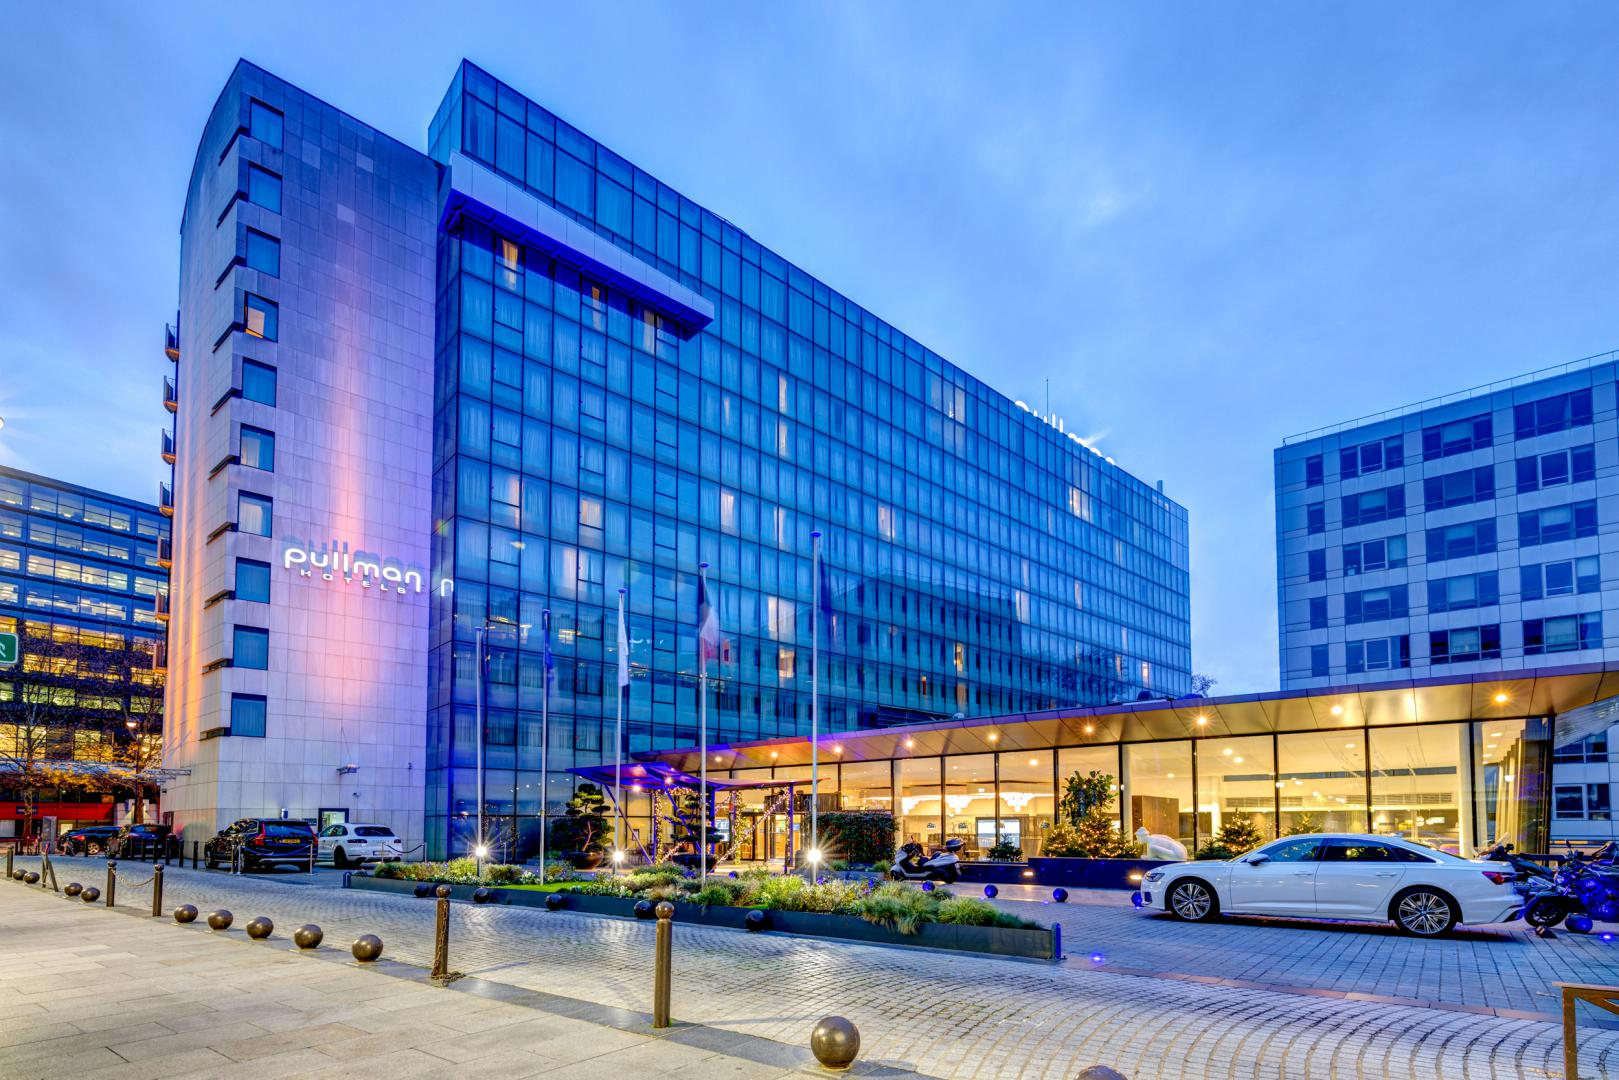 Photographie corporate Hotel Pullman